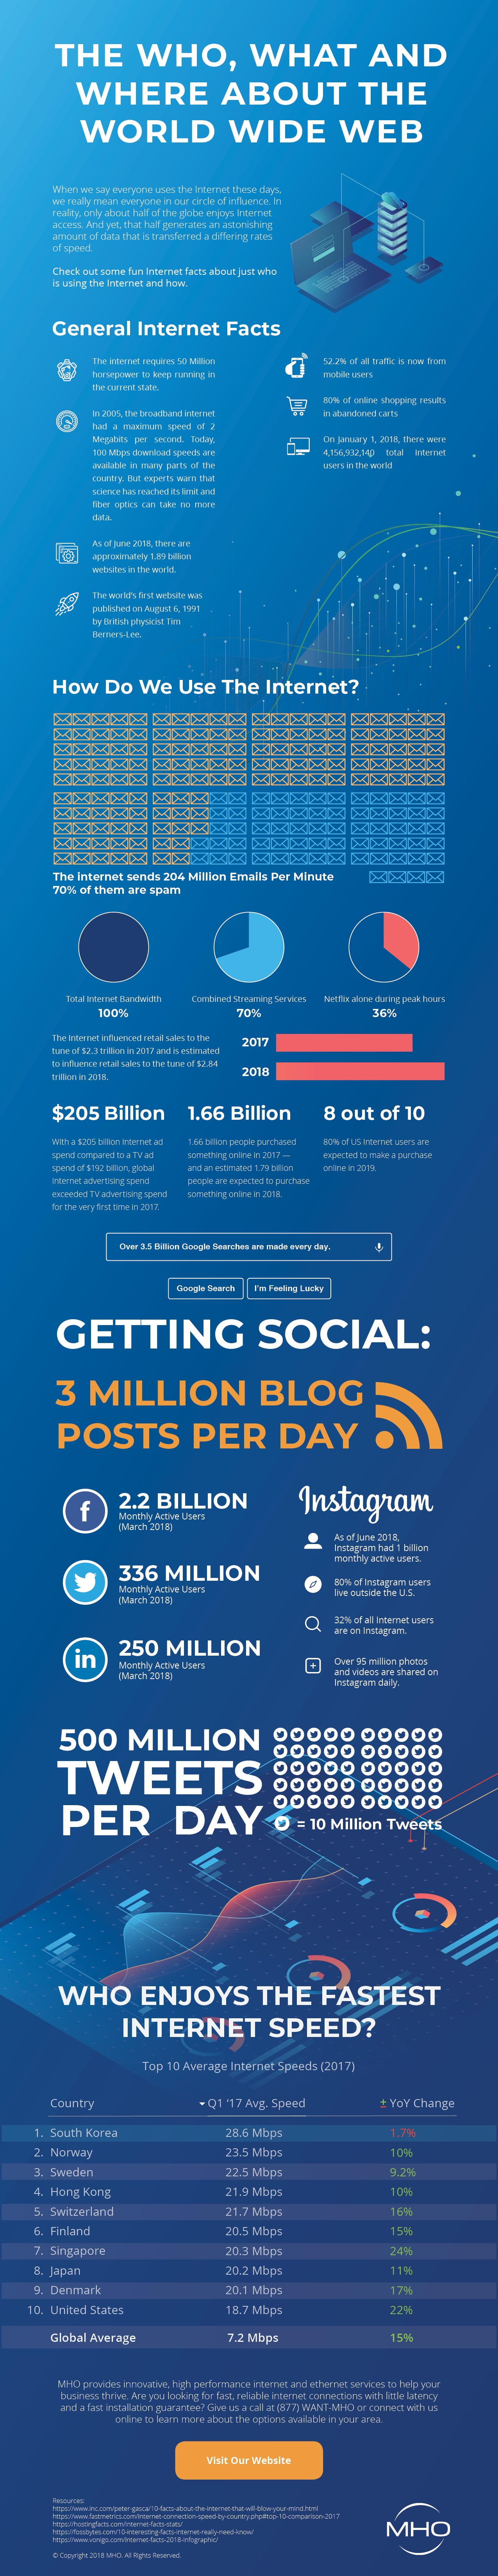 MHO Internet Facts Infographic 2018-10-25-01 (1)-1